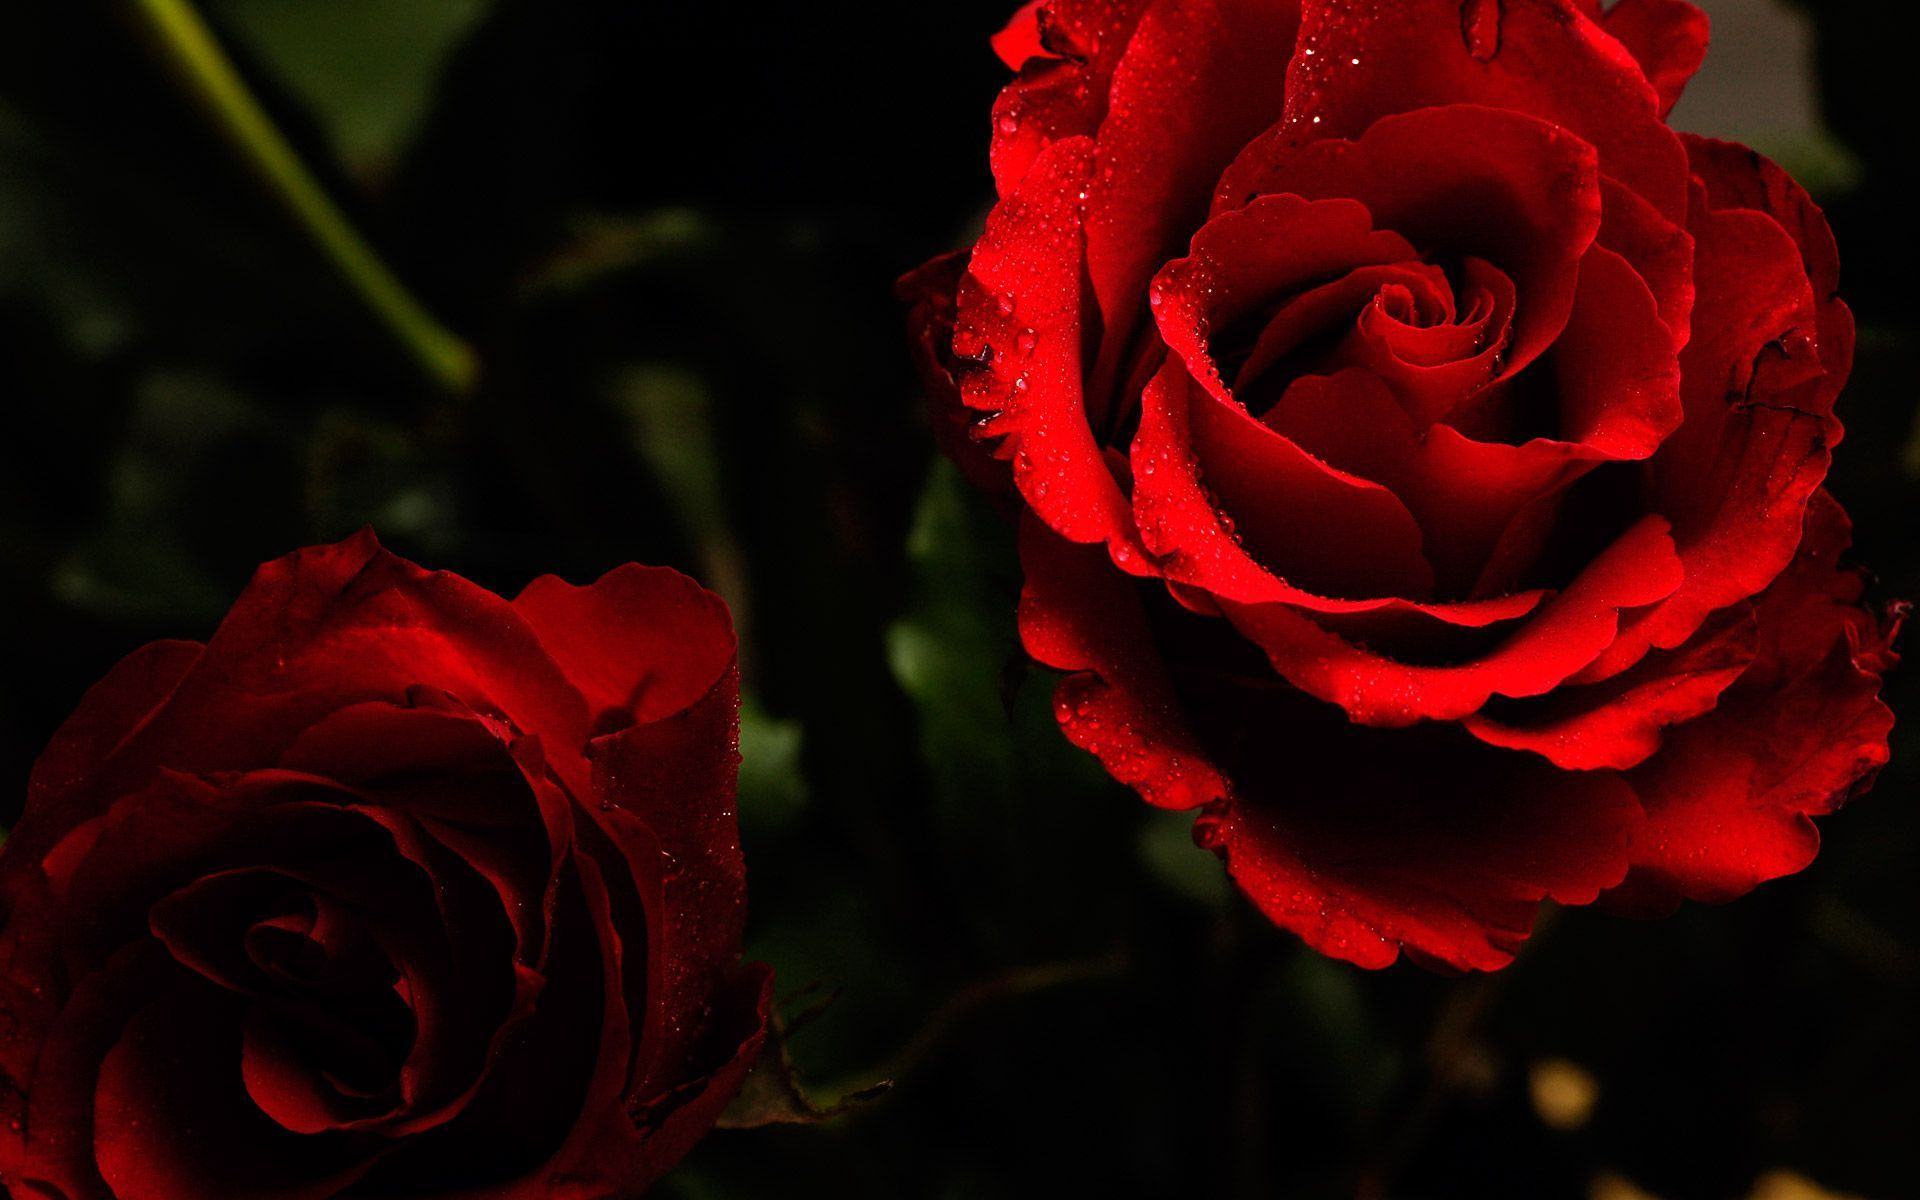 Aesthetic Roses Wallpapers - Wallpaper Cave